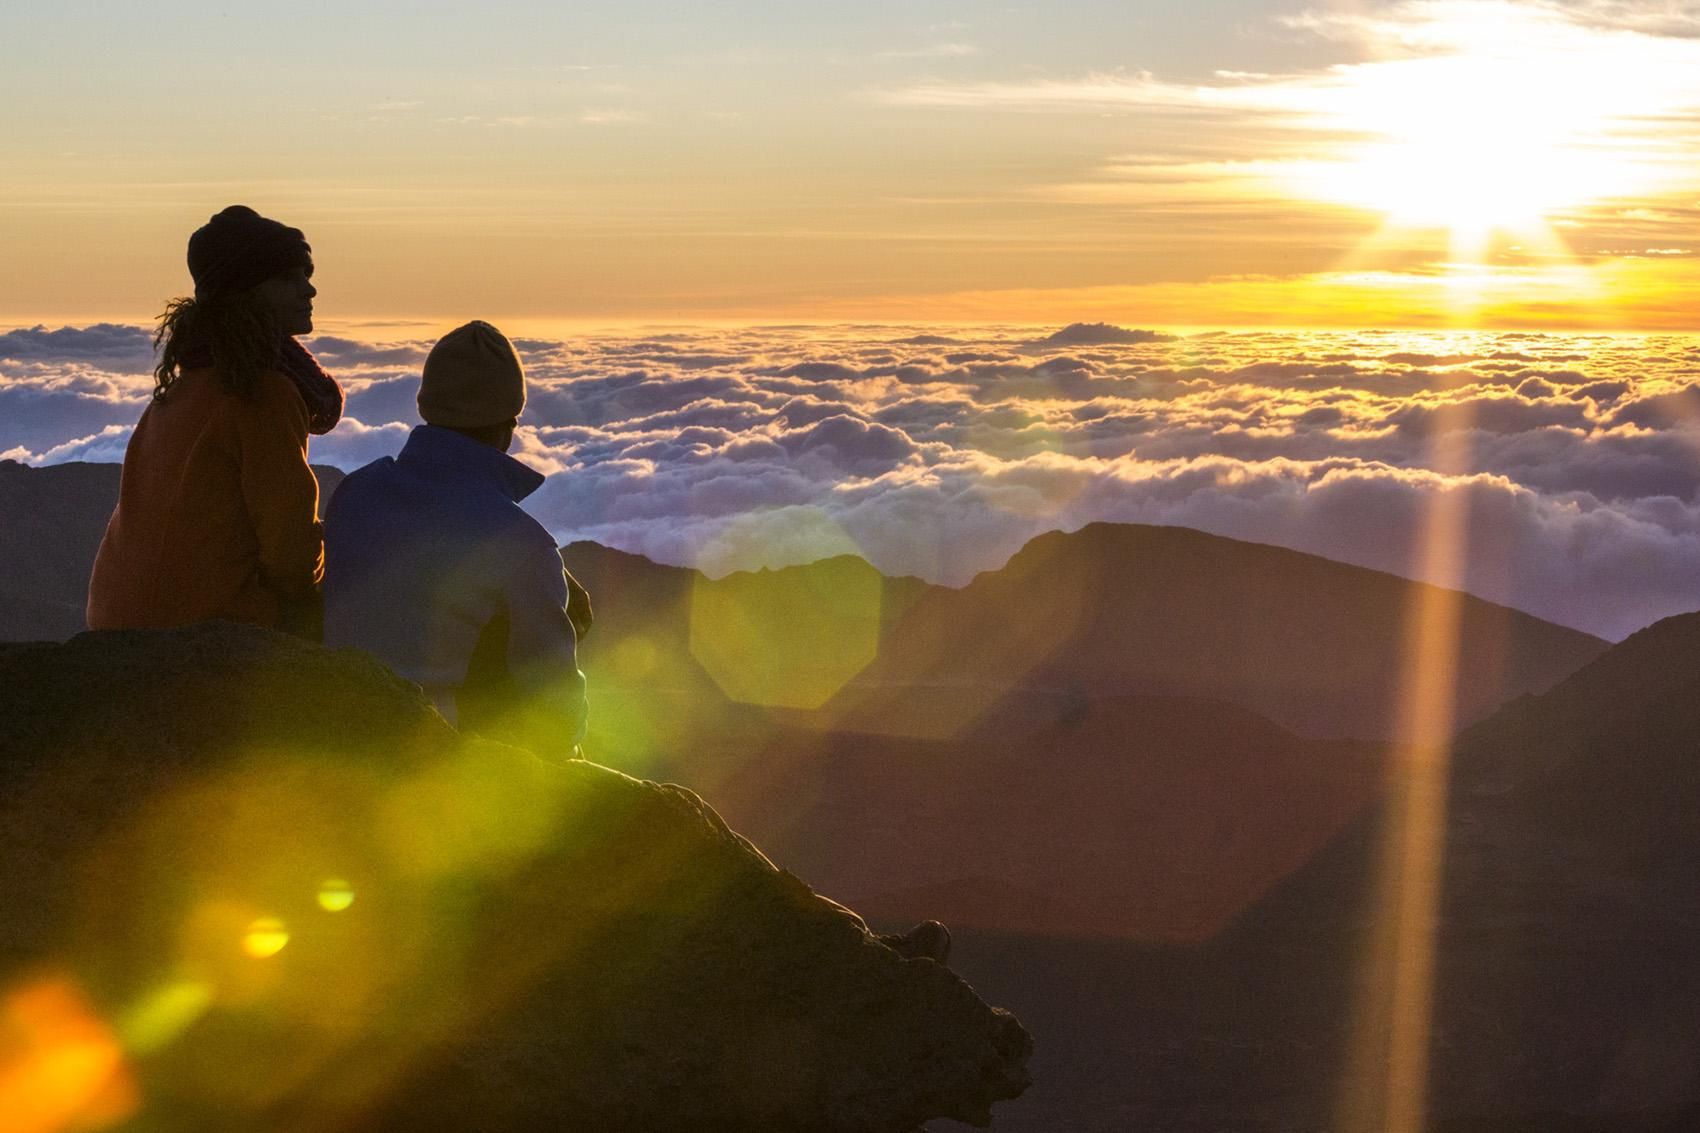 Sunrise from Haleakala on Maui